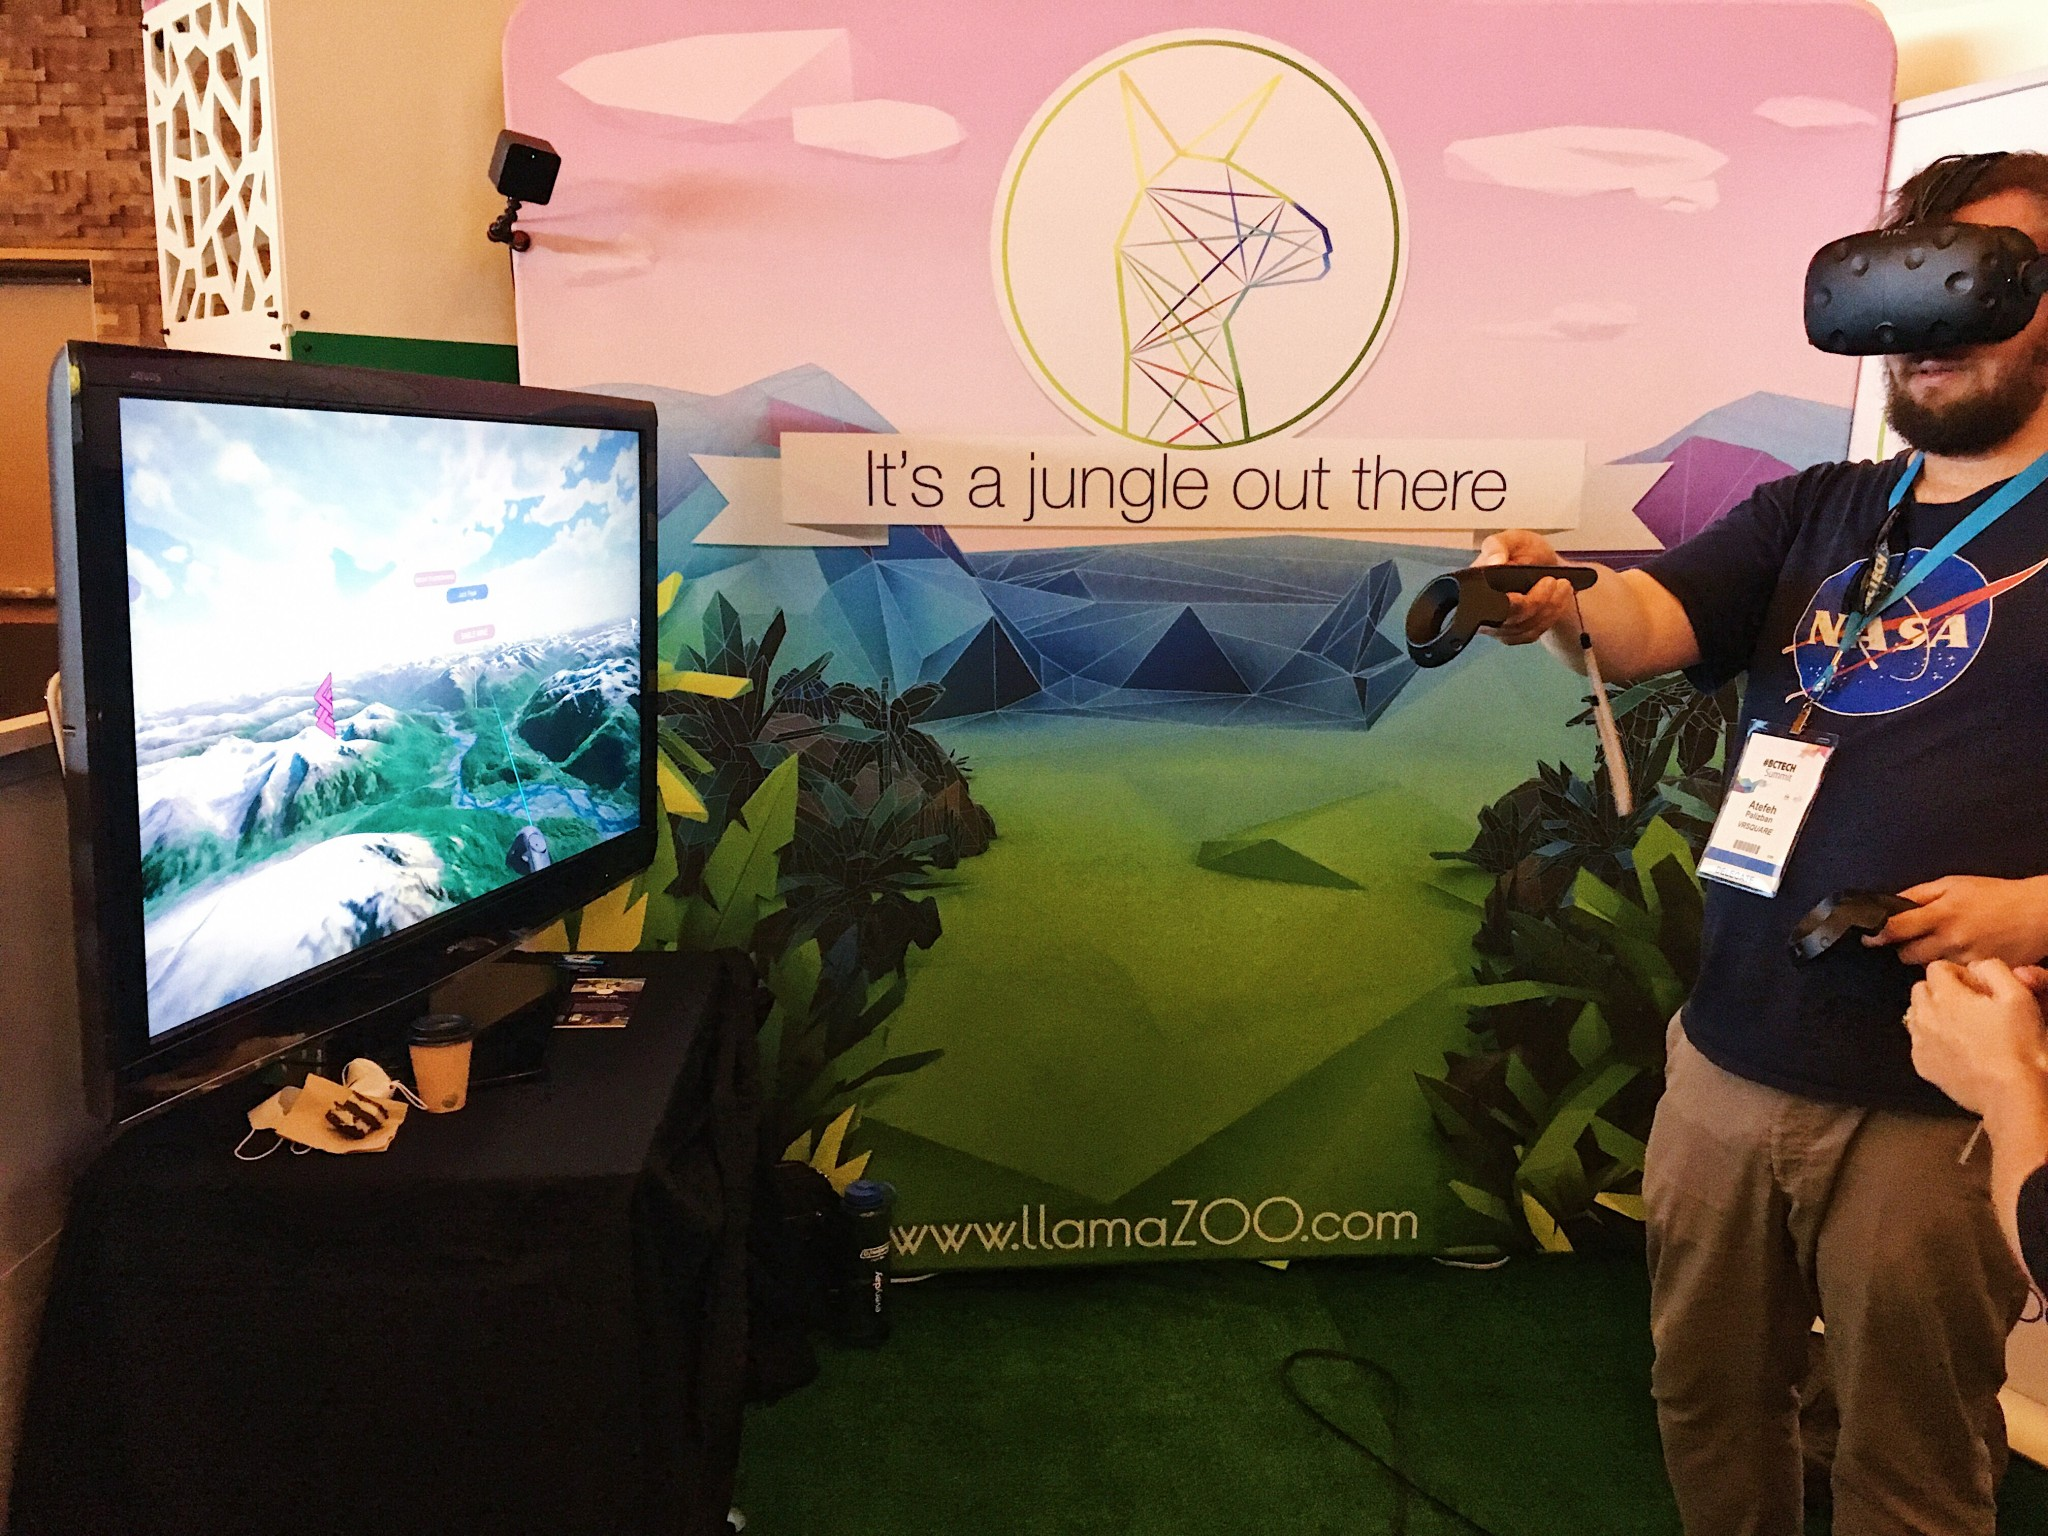 LlamaZOO's MinelifeVR Demo at #BCTECH summit